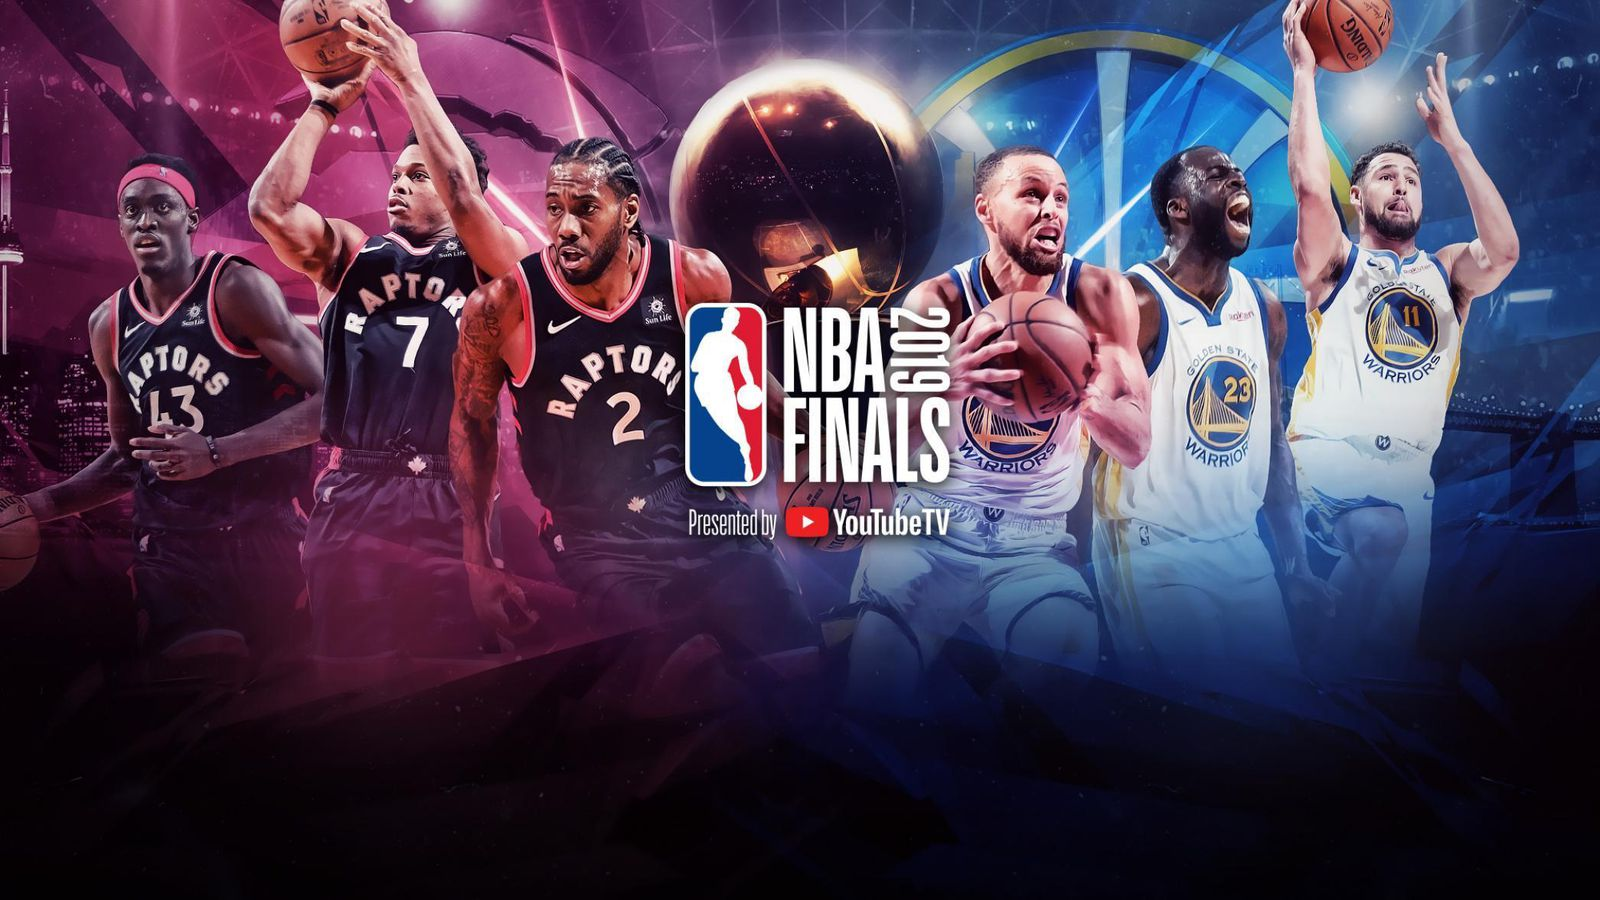 NBA finals-art-creative-warriors-raptors.jpg